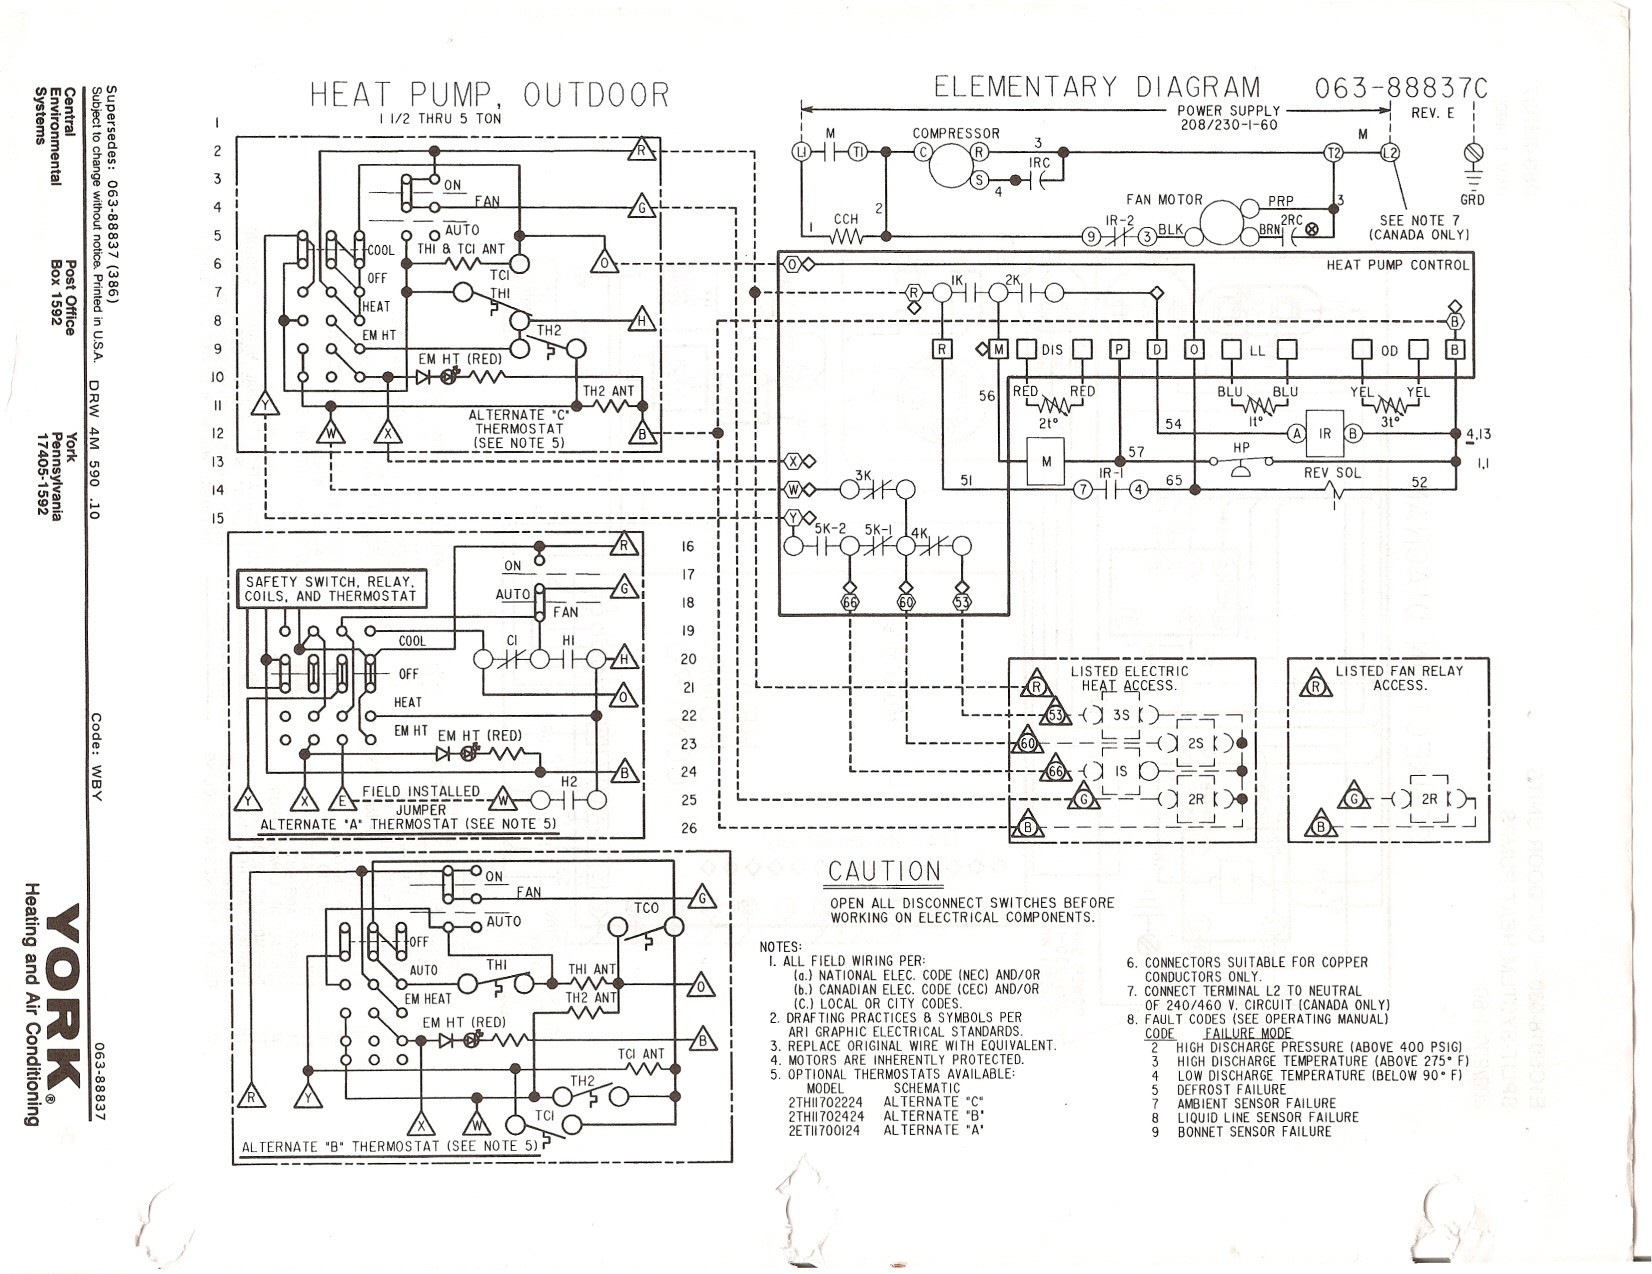 hight resolution of trane heat strip wiring diagram wiring diagram generalheil wiring diagrams wiring diagrams electric furnace sequencer wiring